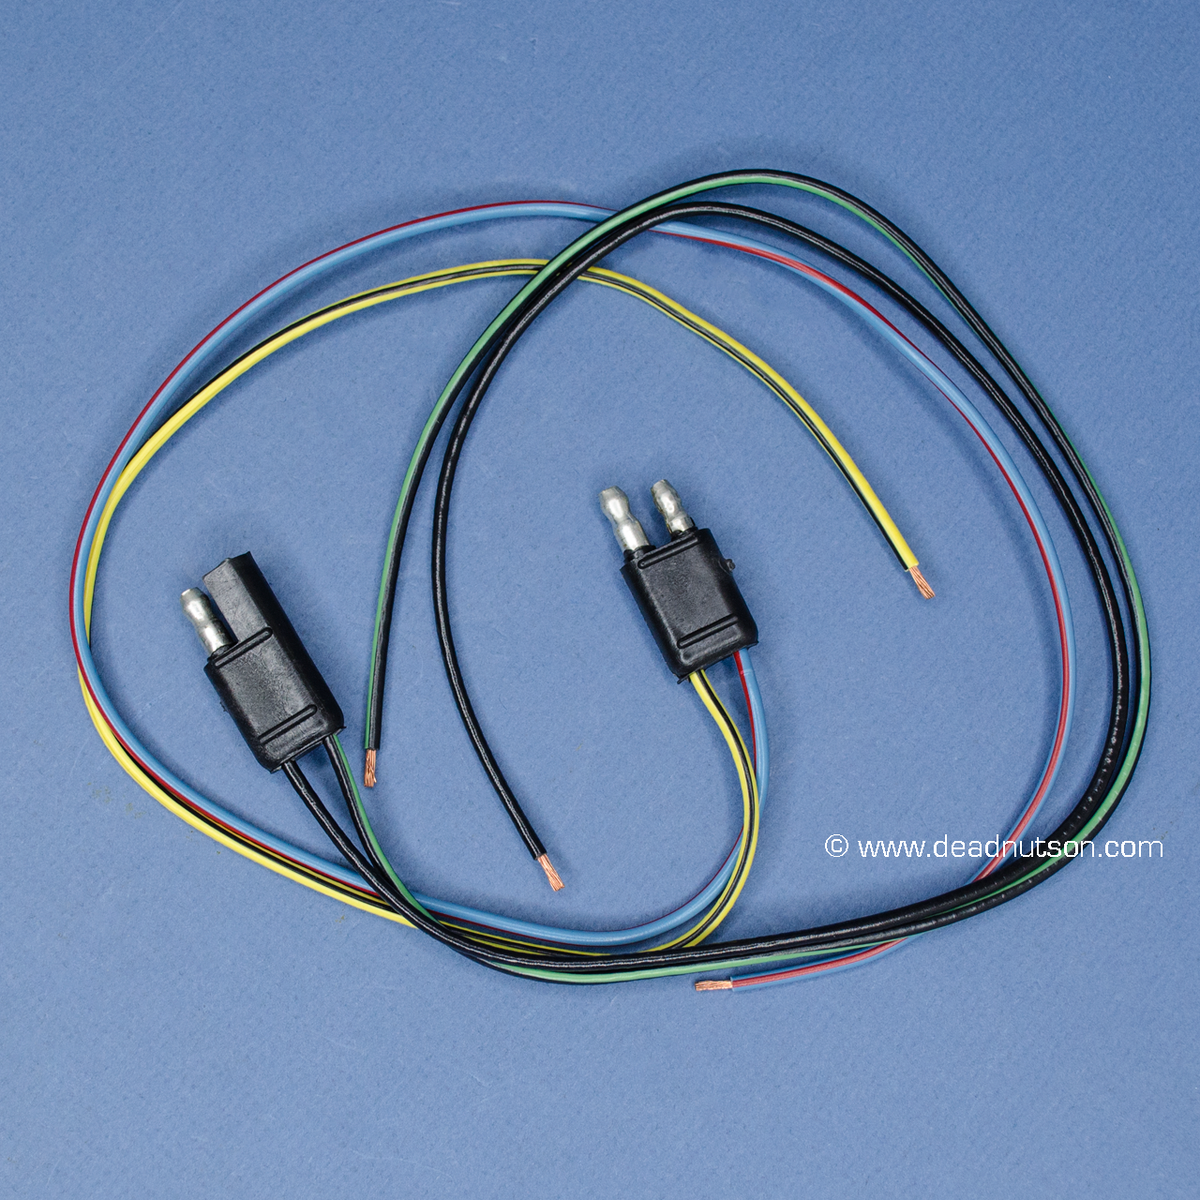 1967 70 Mustang Am Radio Wiring Repair Harness Set Dead Nuts On Product